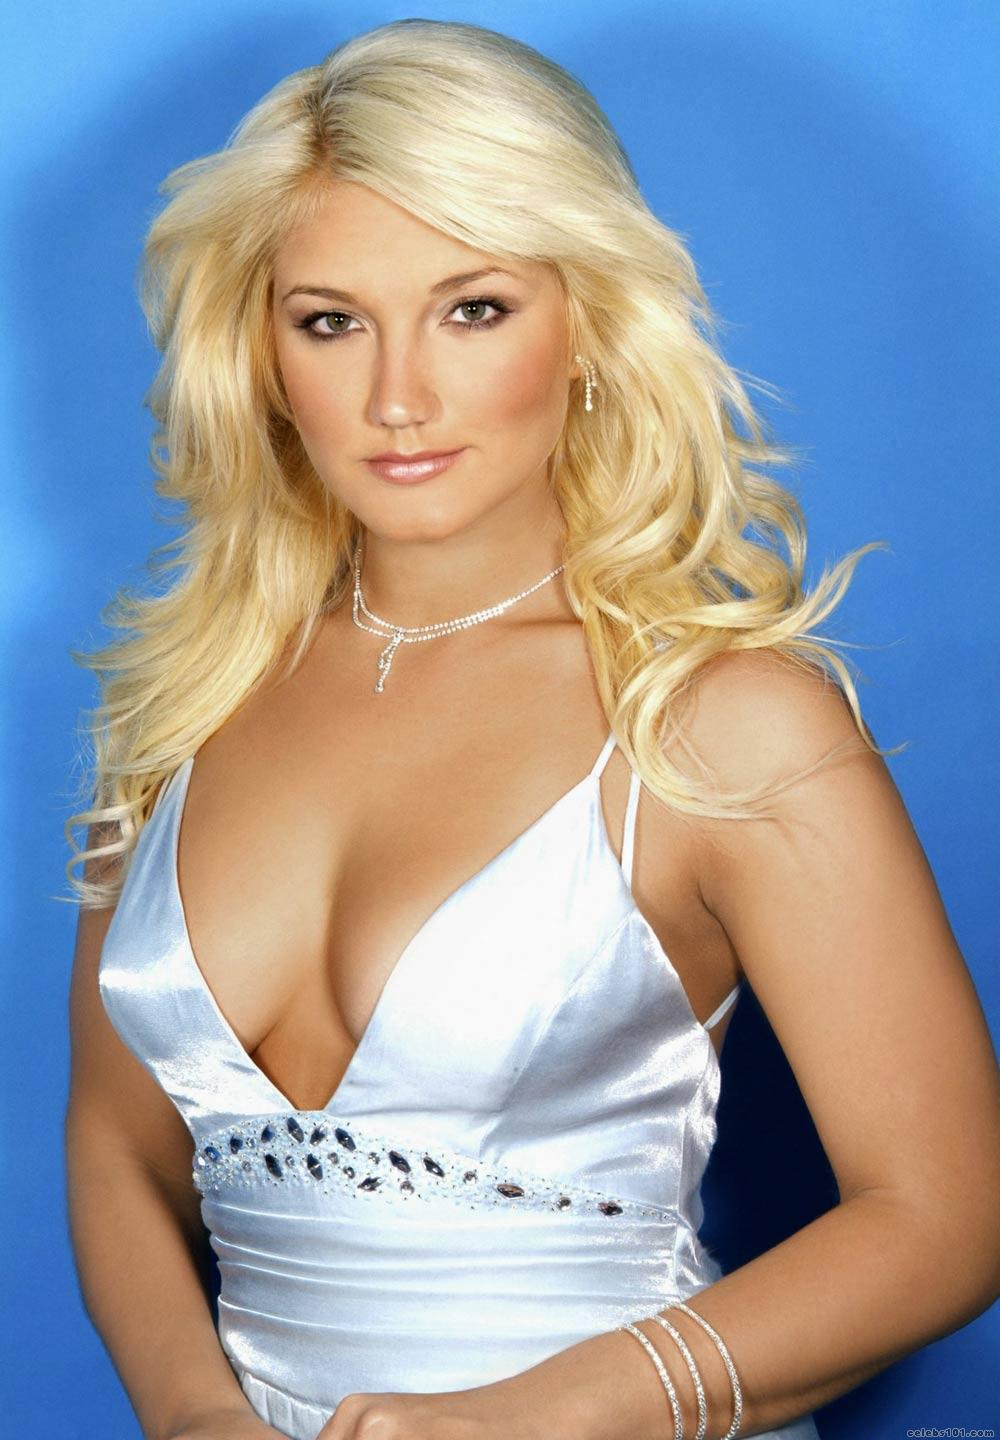 brooke hogan album, brooke hogan falling, brooke hogan fat, brooke hogan hot, brooke hogan redemption, Sexy Brooke Hogan Pictures and Video